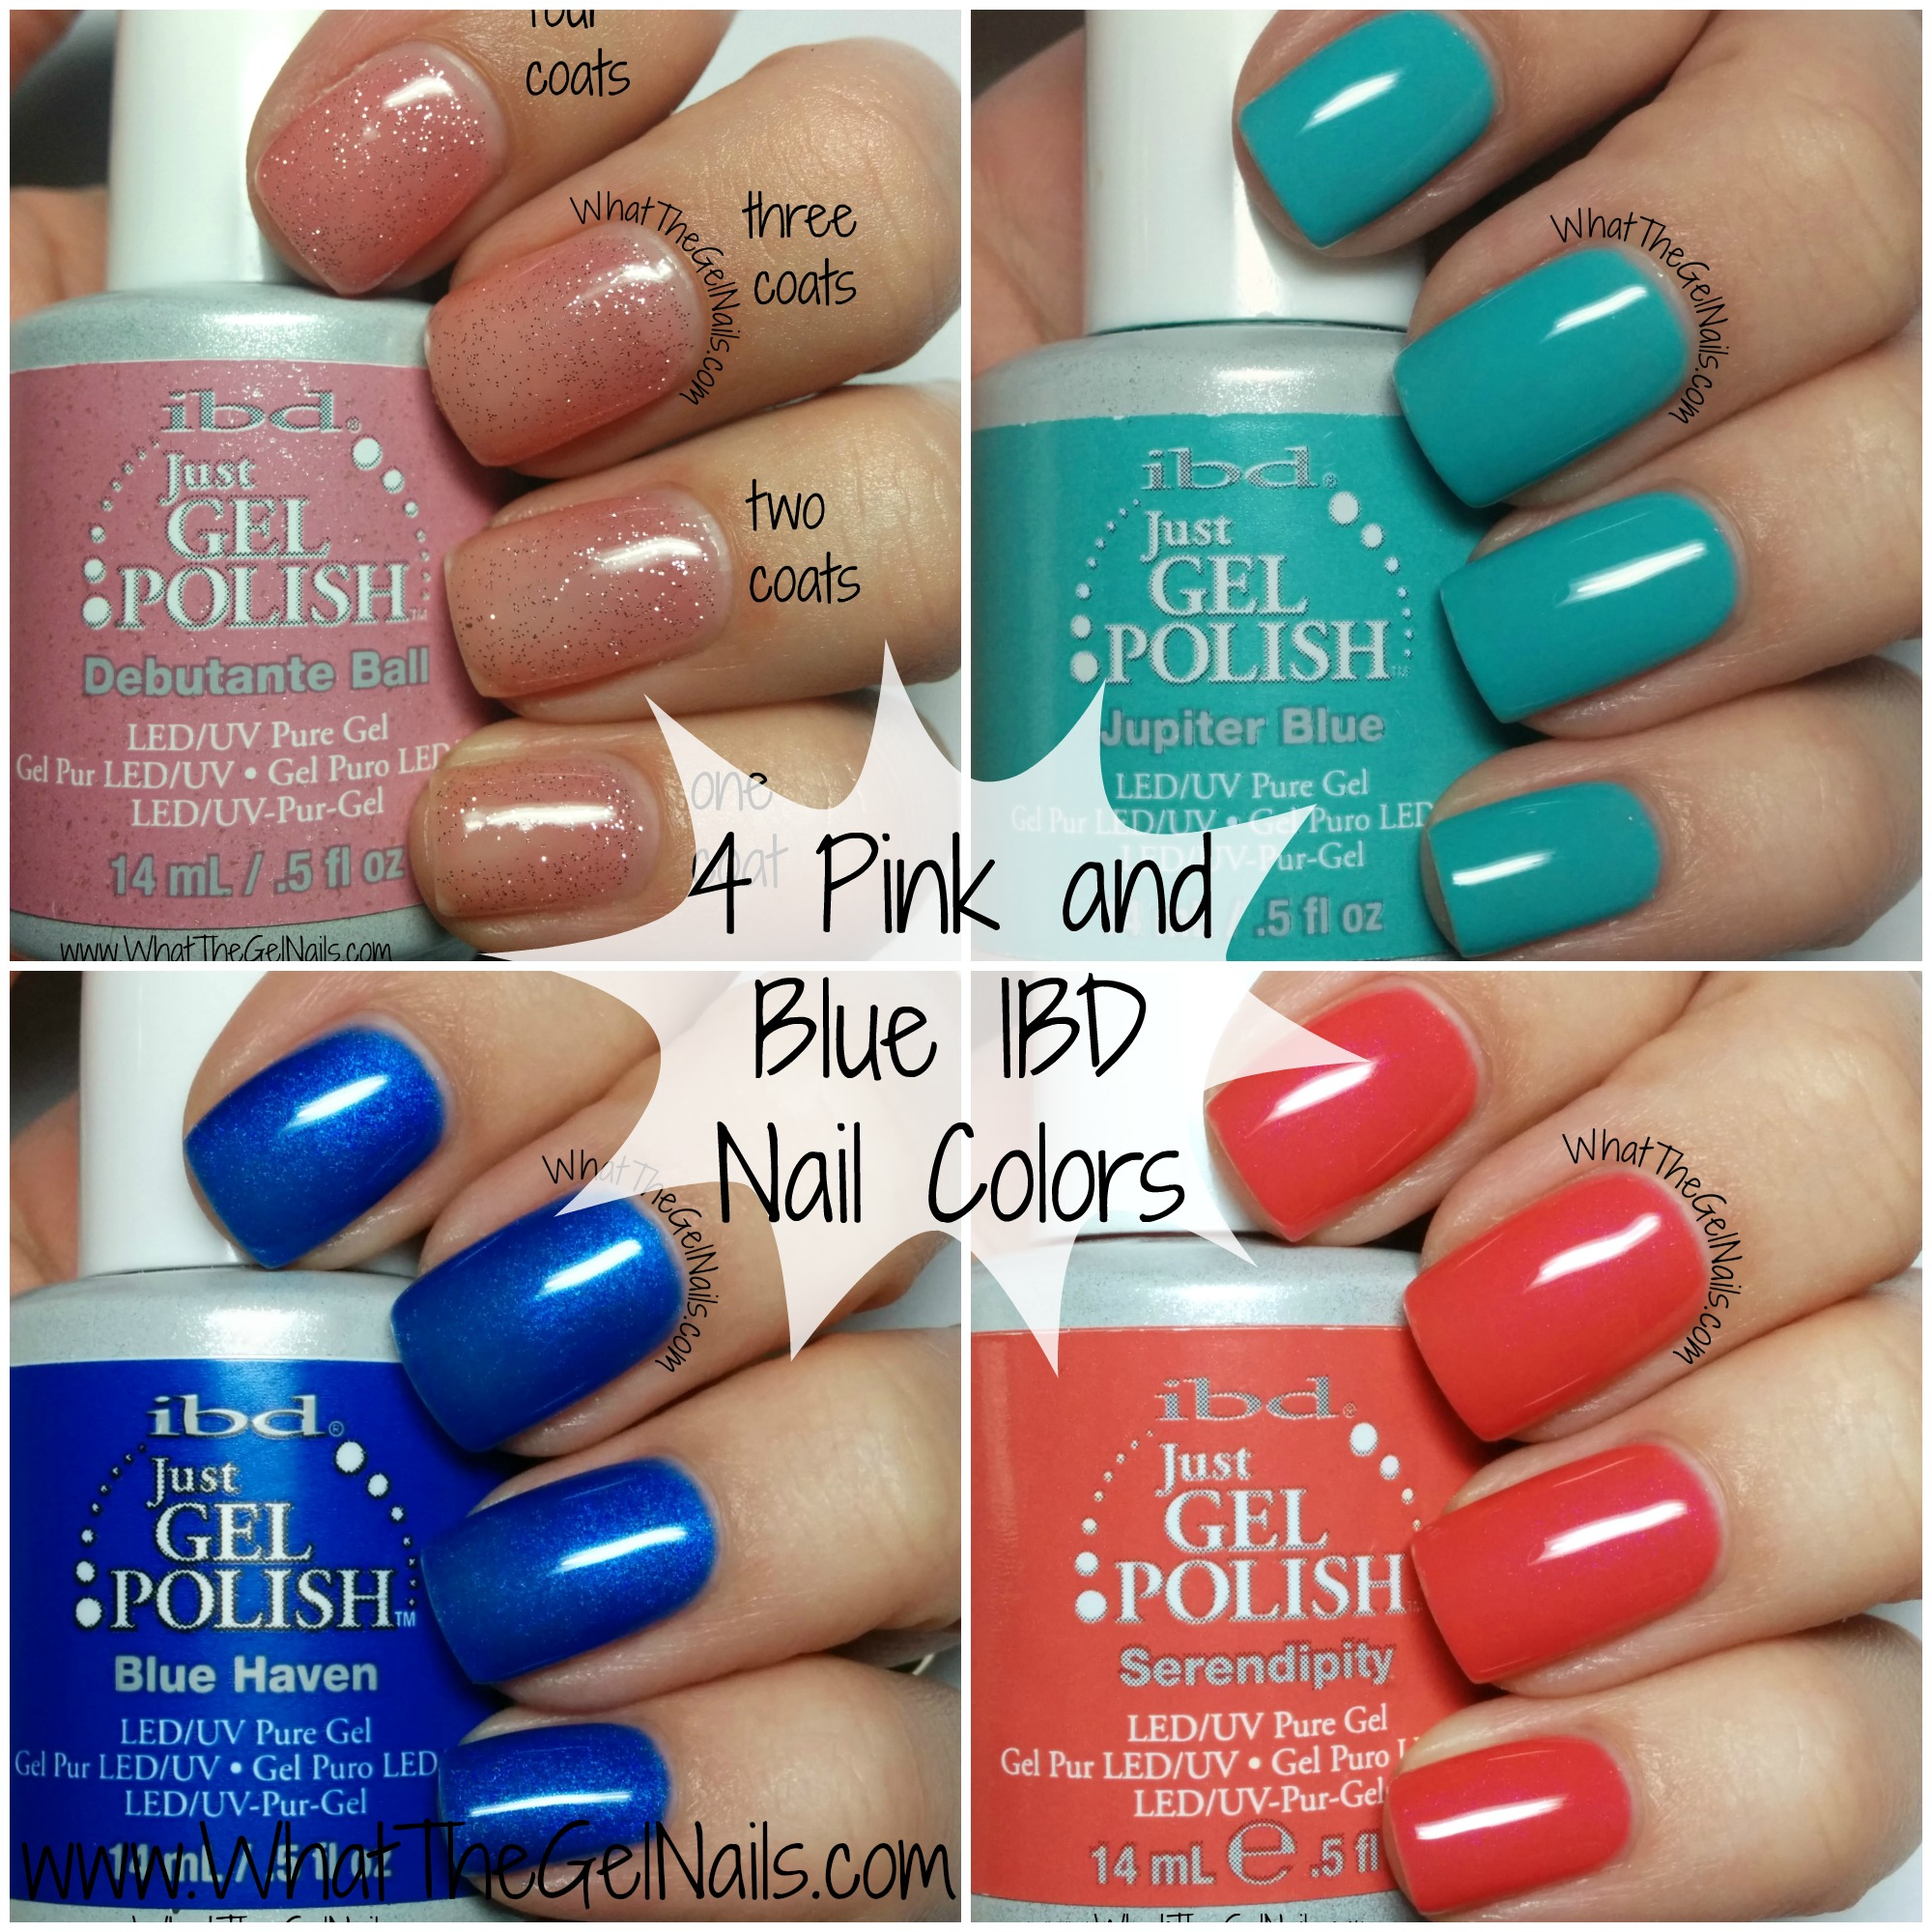 Pink and Blue IBD Nails Colors